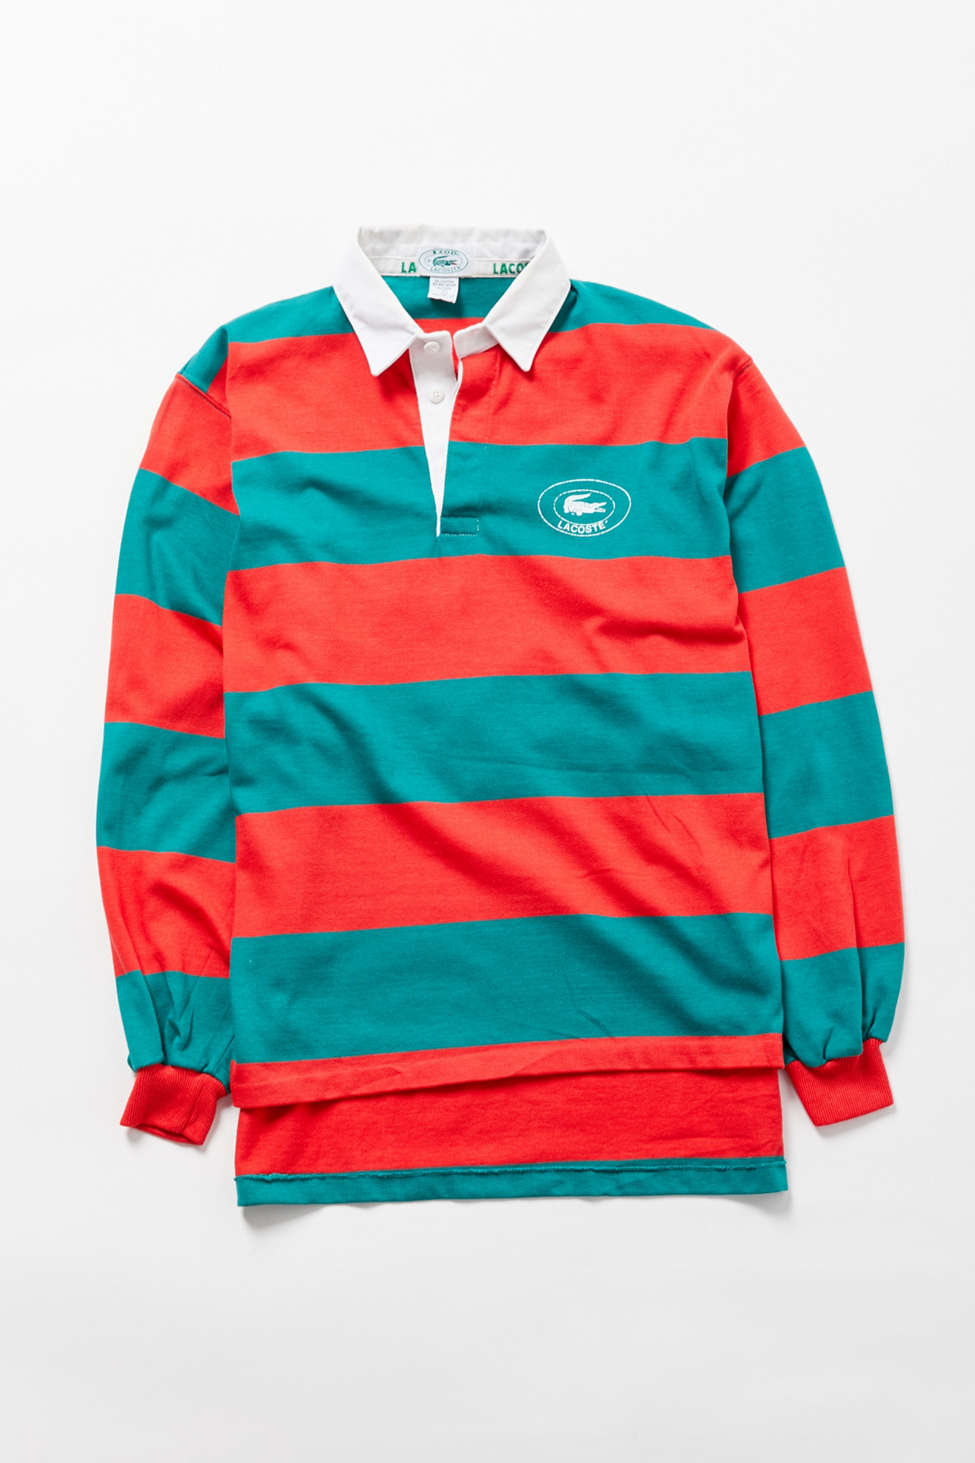 Vintage Lacoste Striped Long Sleeve Rugby Shirt